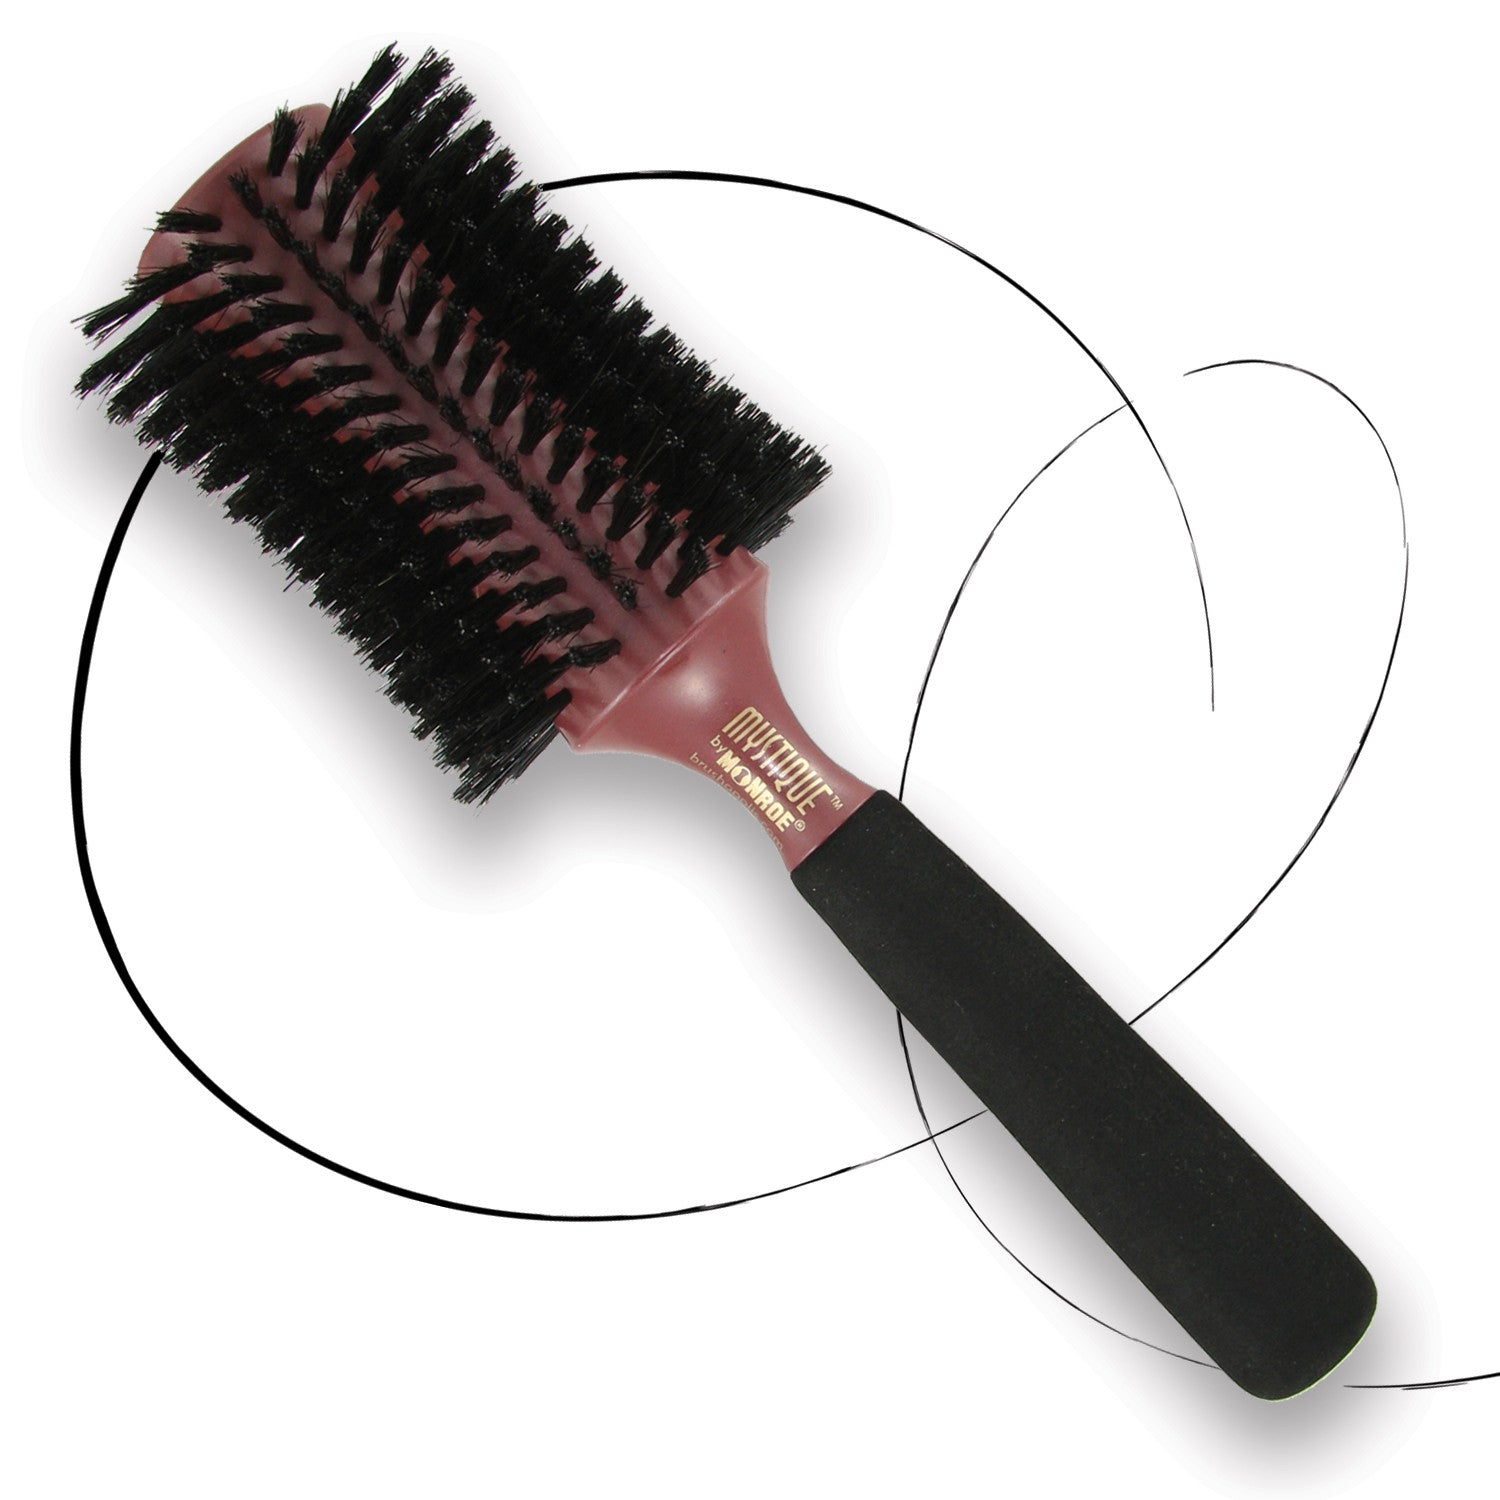 BRUSHOPOLIS-Monroe-hourglass-round-brush-Mystique-MP2545-M-1